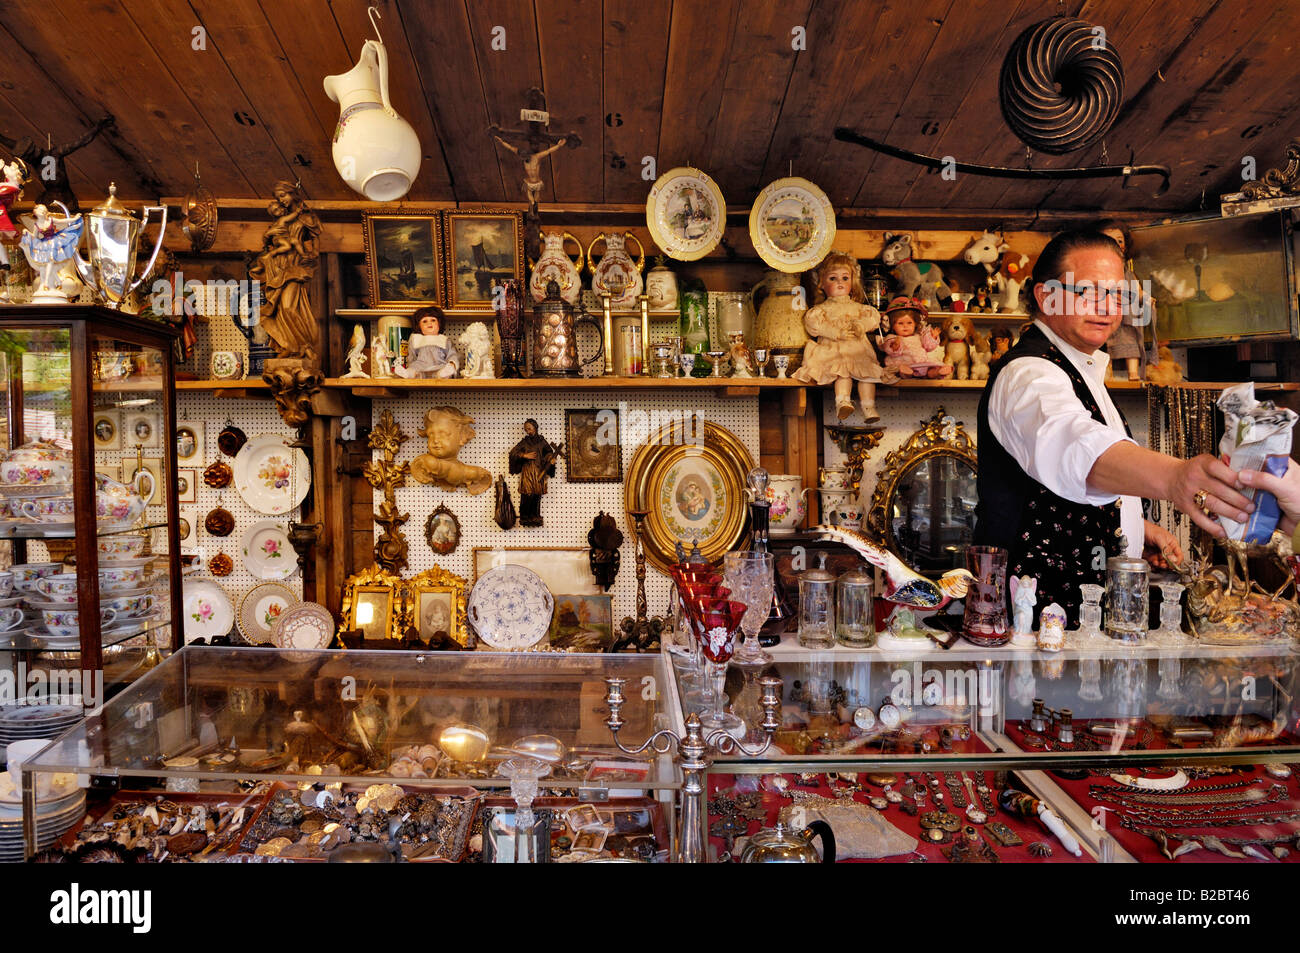 Table wear and various other things, Auer Dult, traditional market in Munich, Bavaria, Germany, Europe - Stock Image